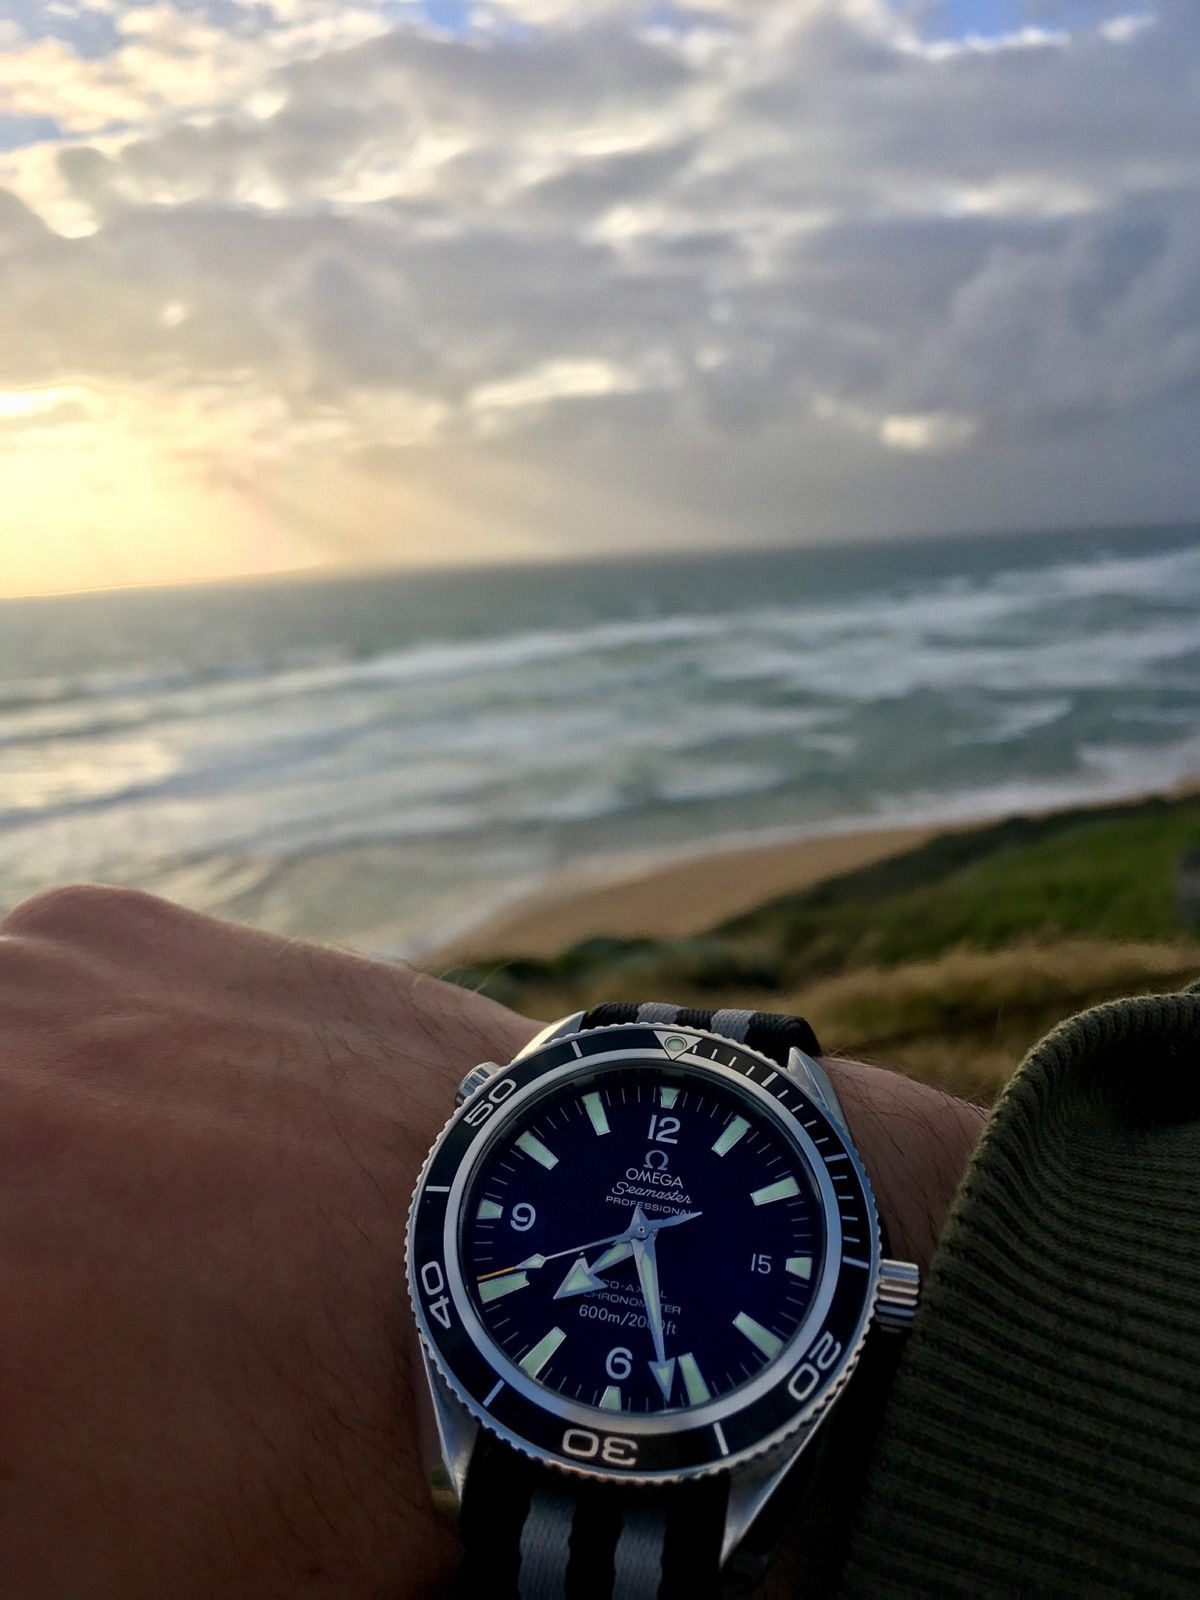 the 2008 Omega Planet Ocean continues to be the watch I wear the most